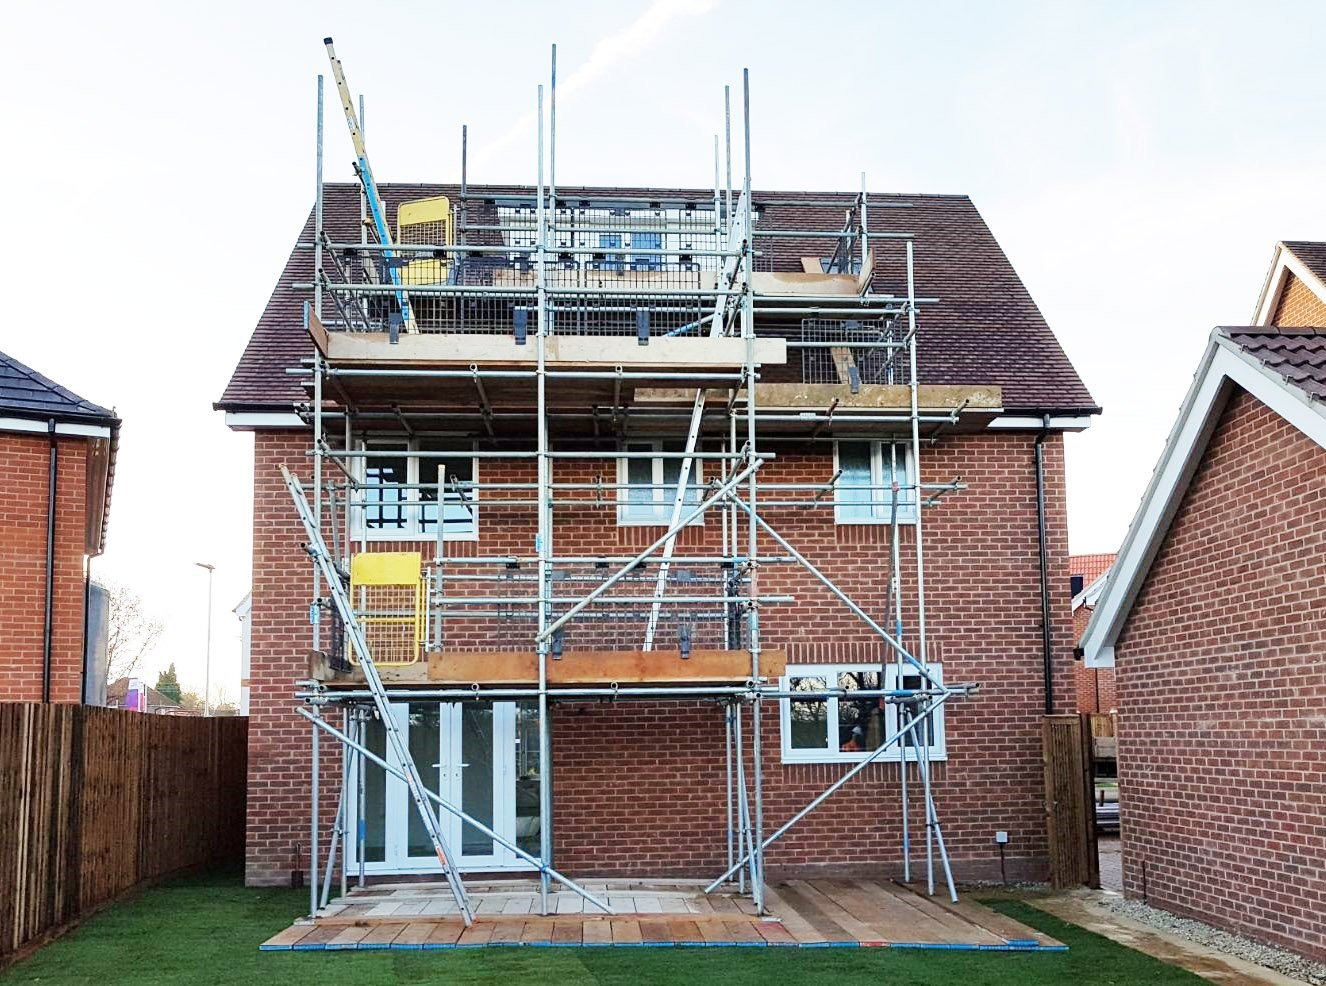 Cost of new boiler with additional scaffolding